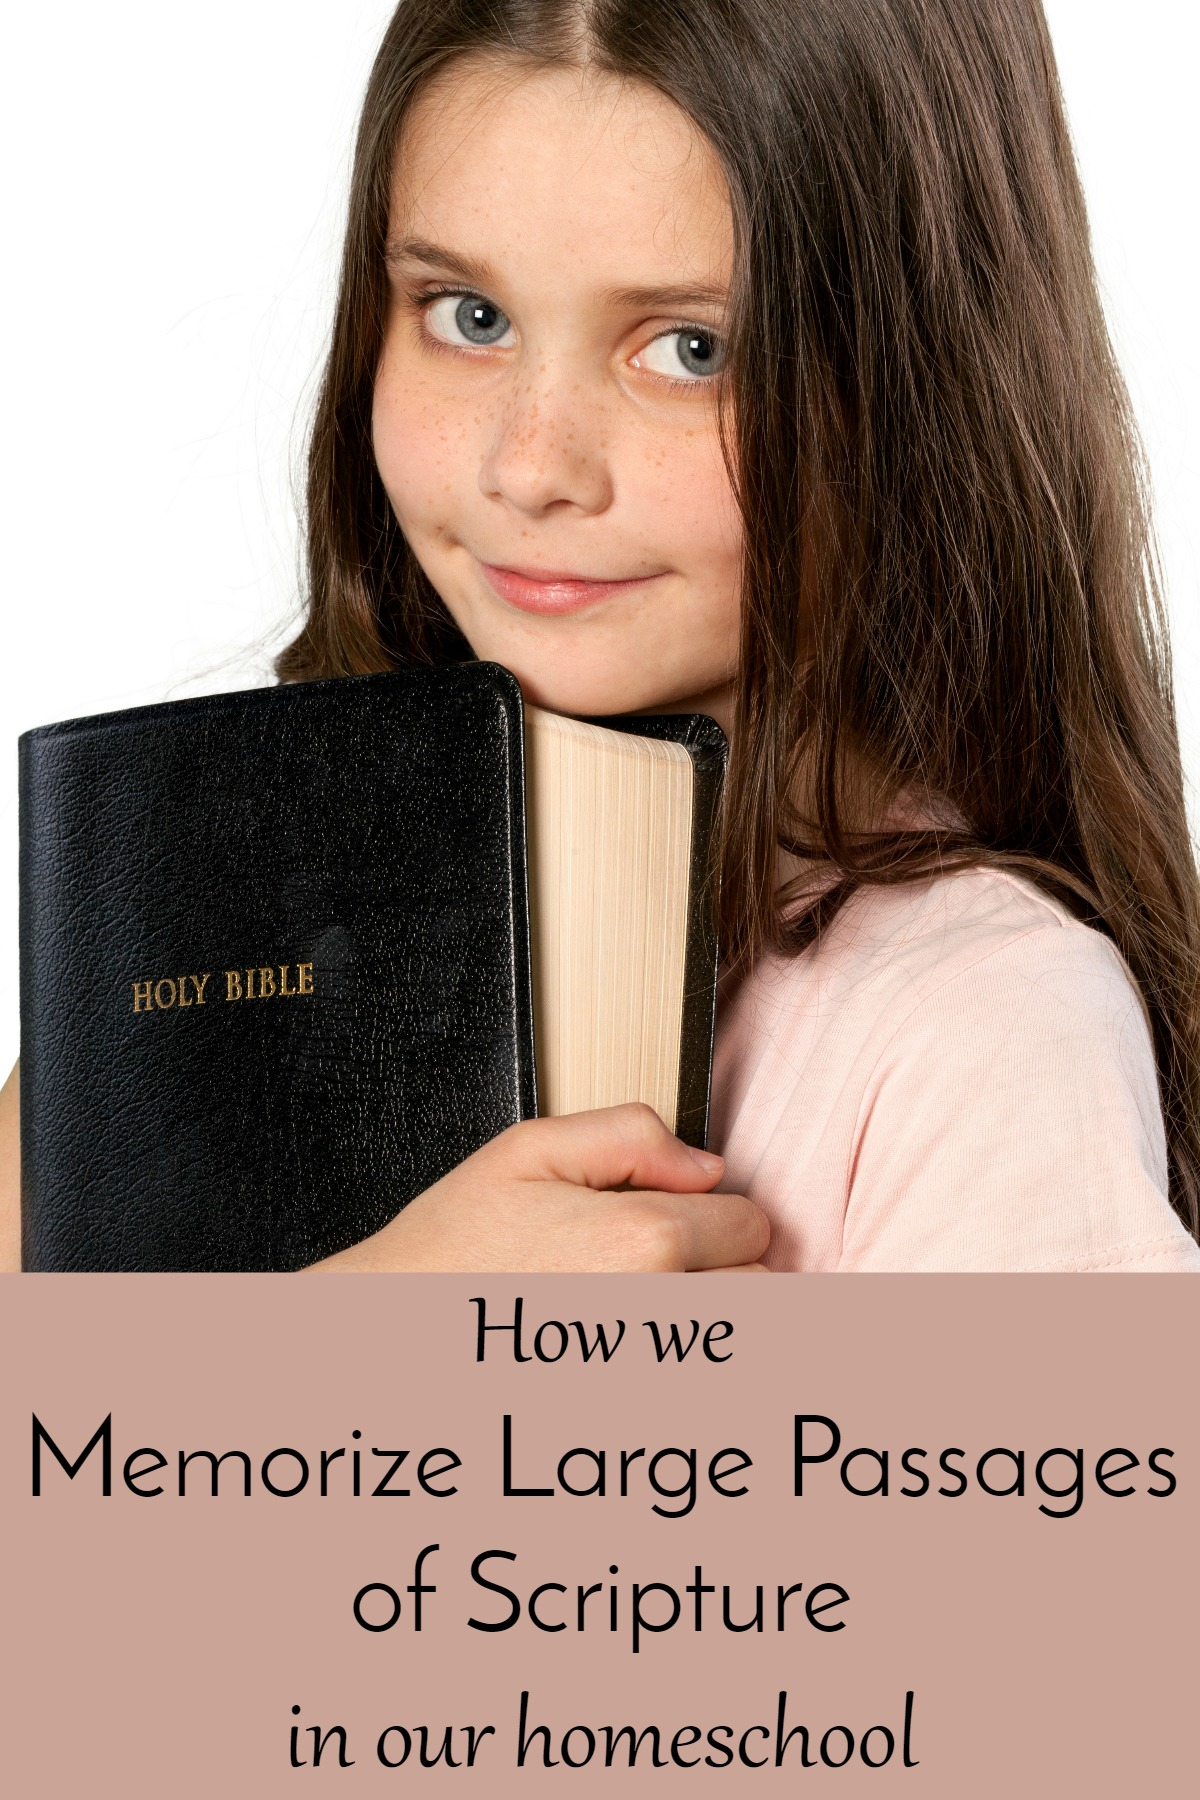 Memorizing Scripture in homeschool - works great with Charlotte Mason style